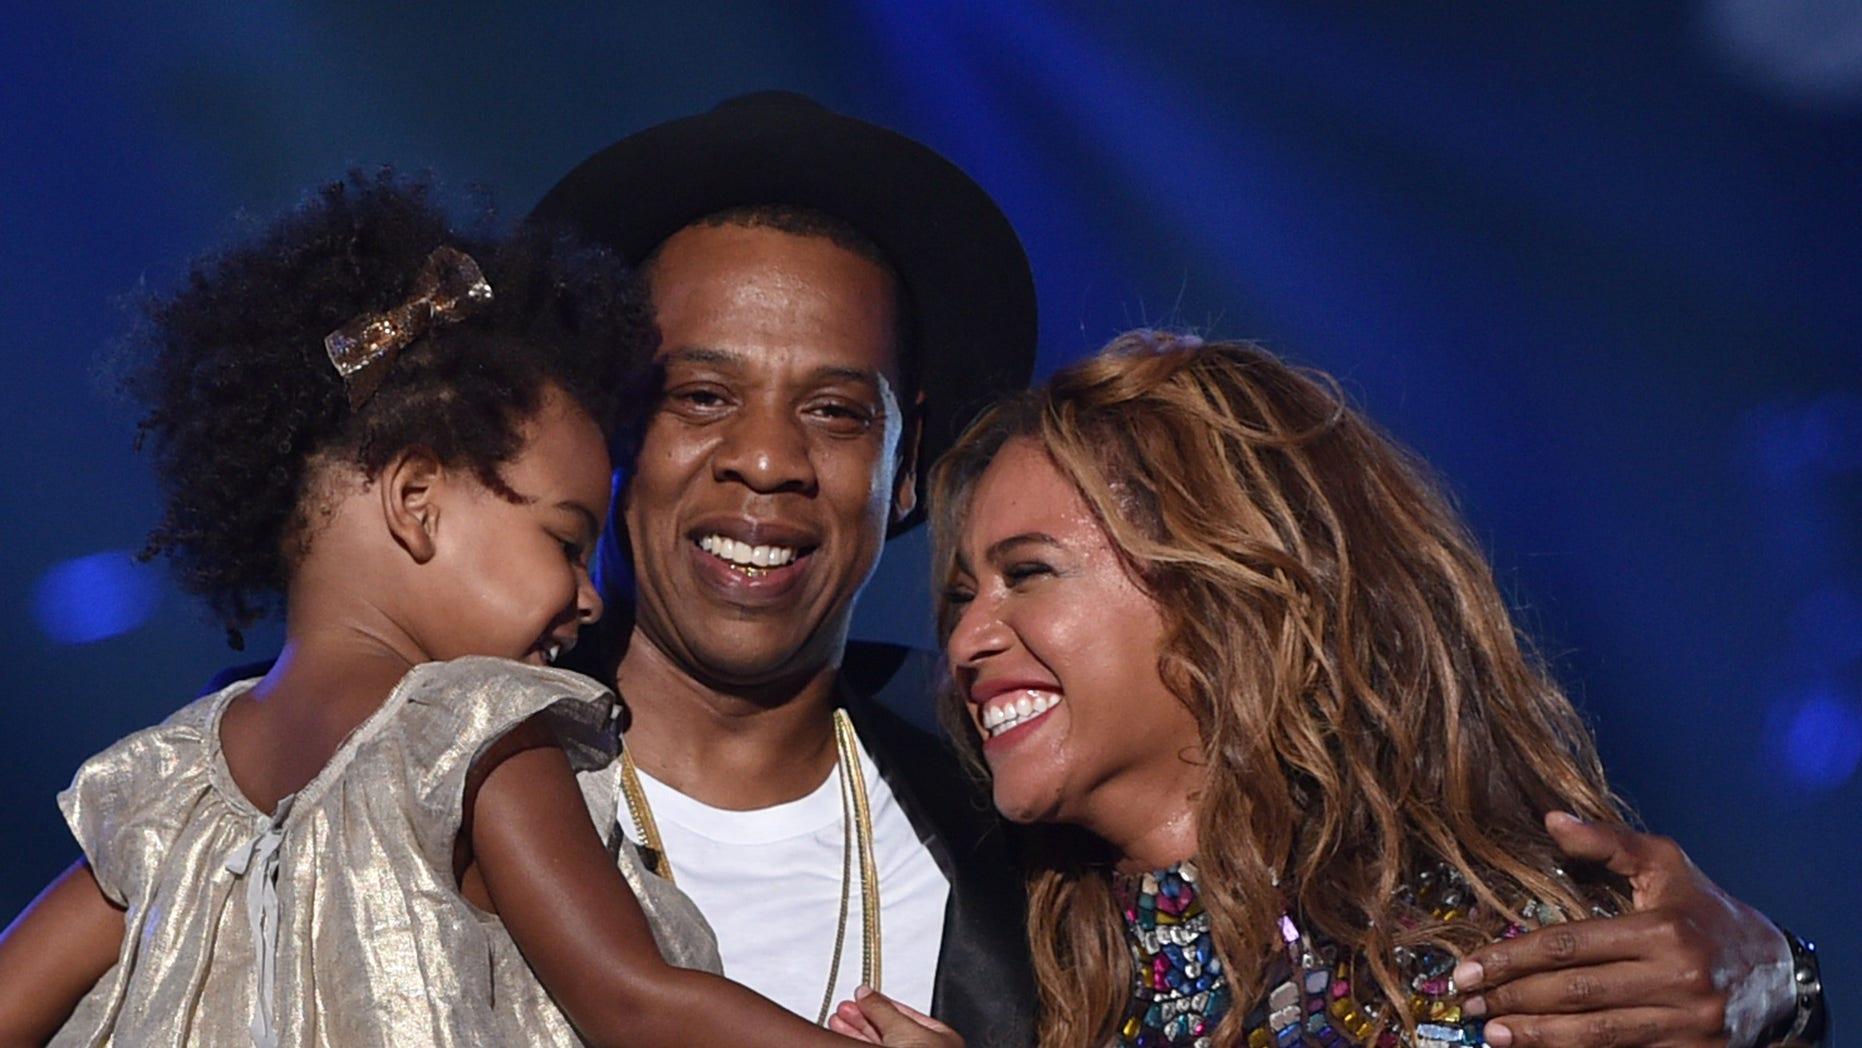 Jay Z, Beyonc and their daughter Blue Ivy